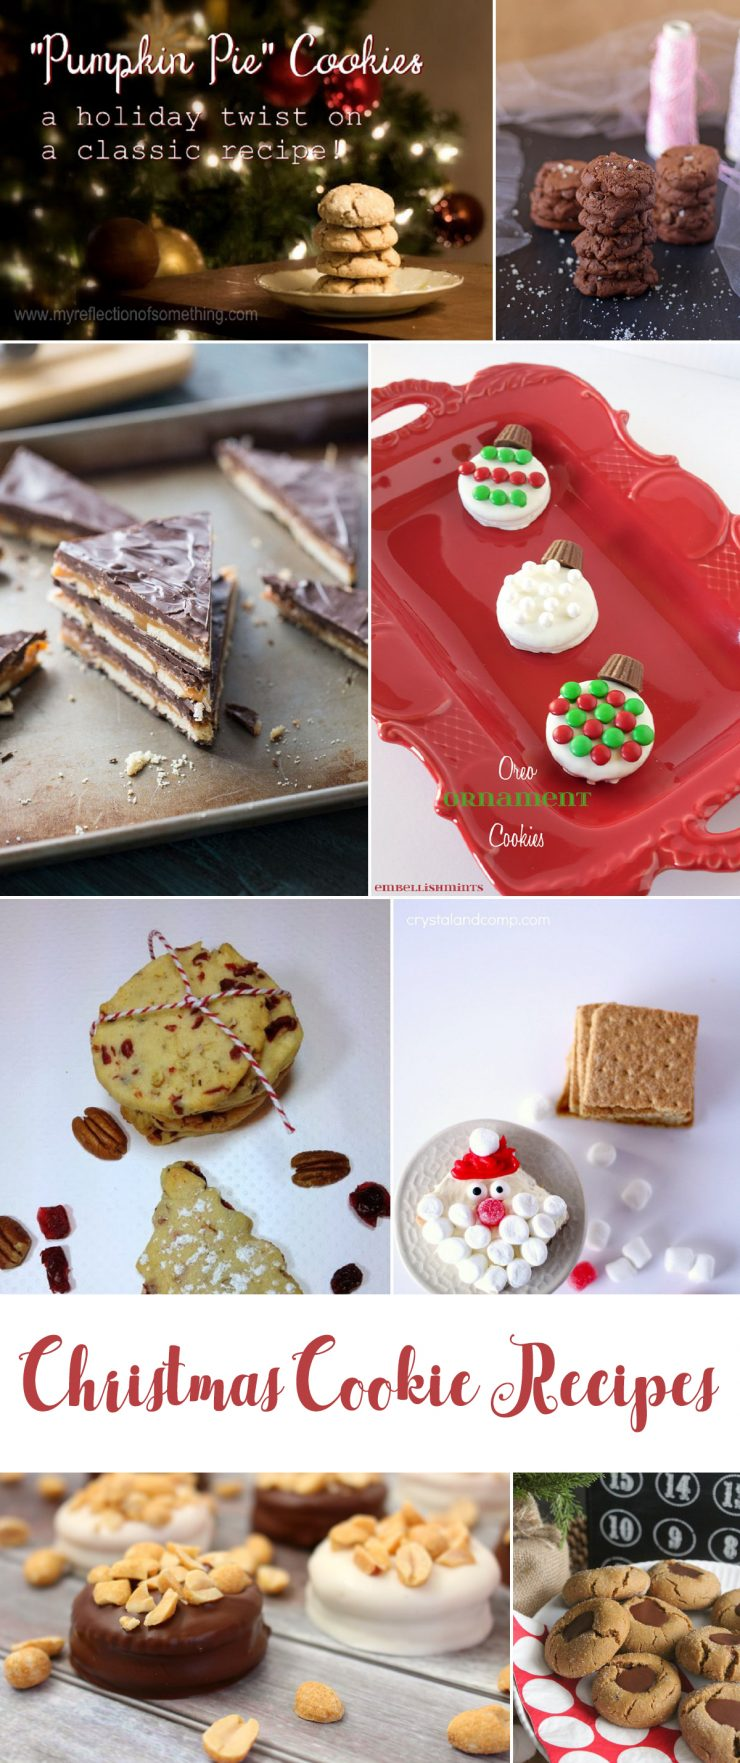 Christmas-Cookie-Recipes